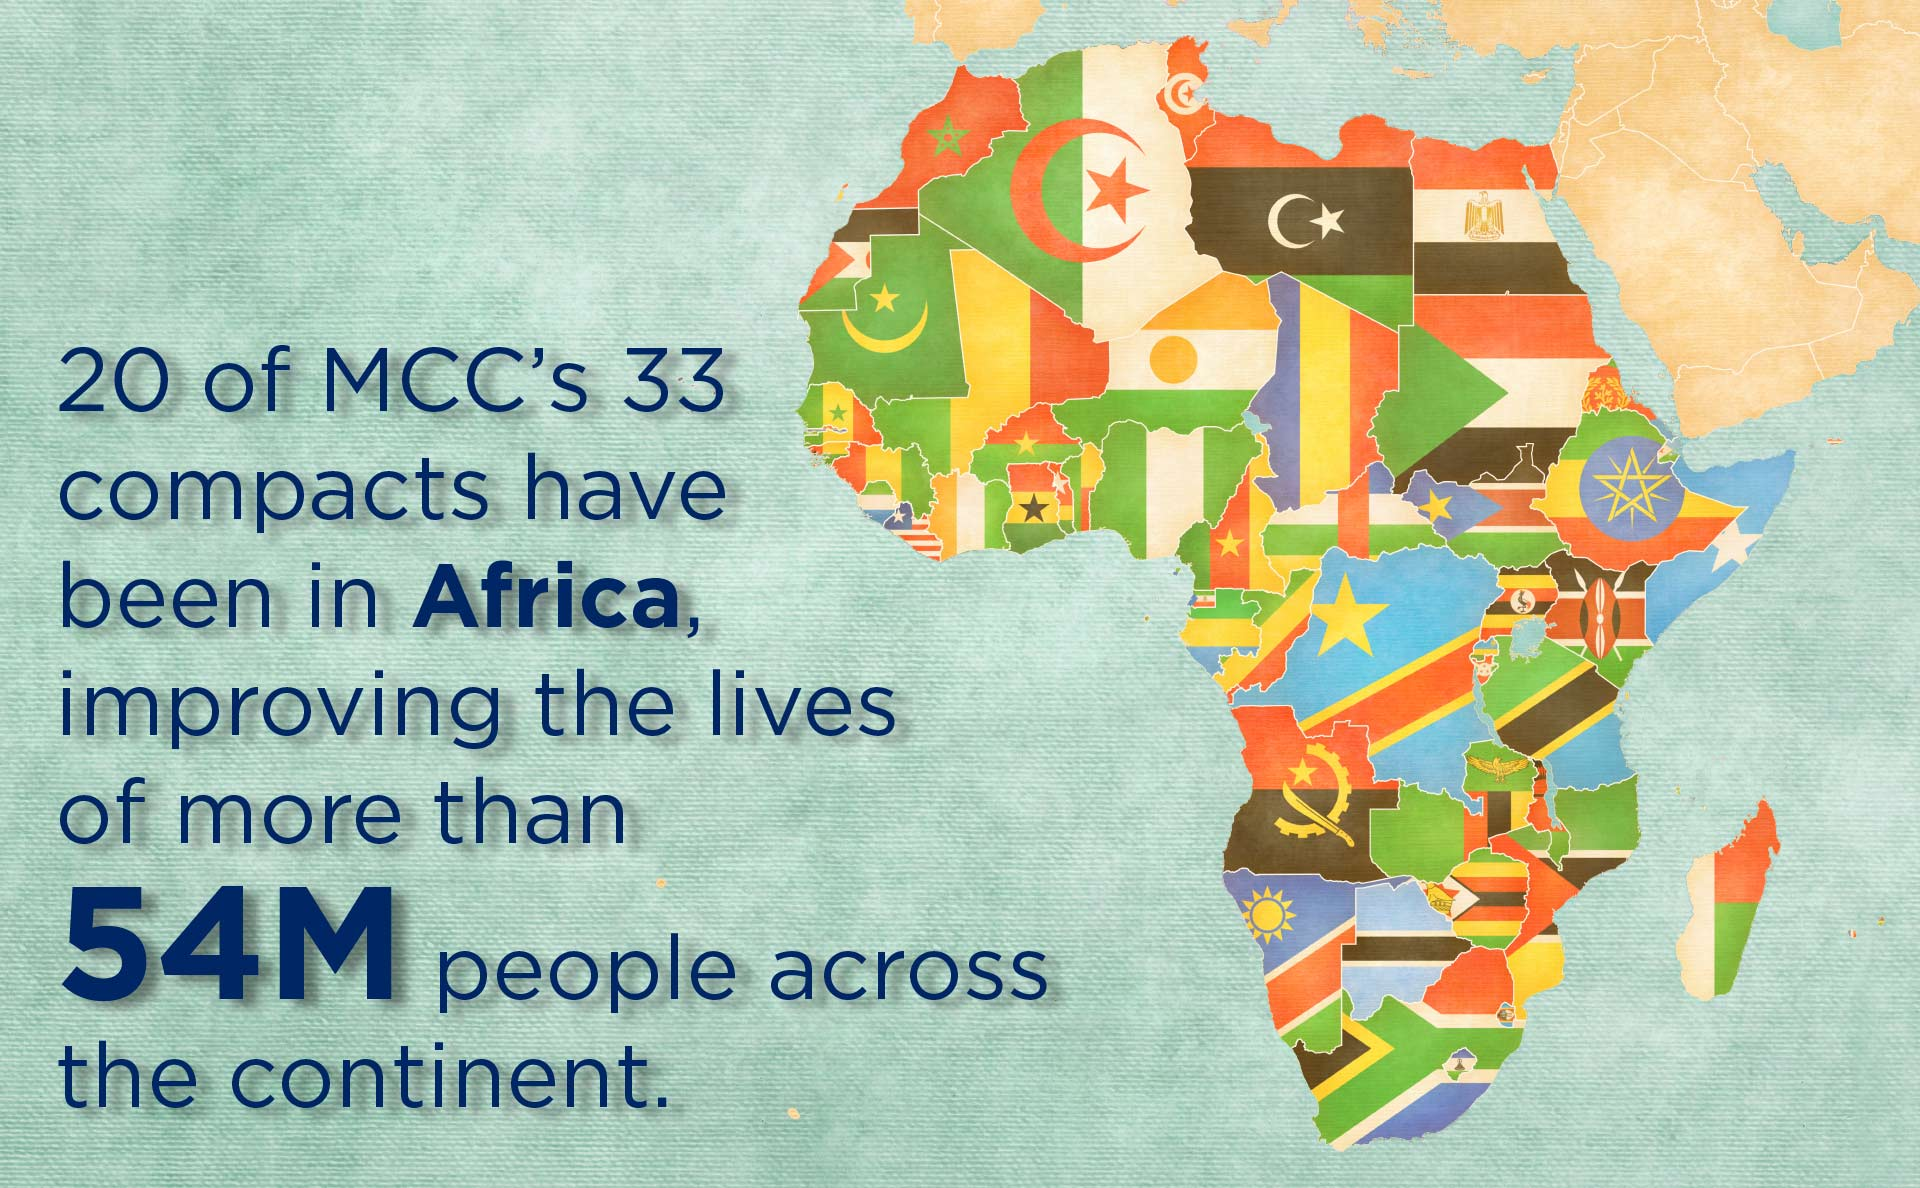 Graphic: map of Africa with overlaid text: 20 of MCC's 33 compacts have been in Africa, improving the lives of more than 54 million people across the continent